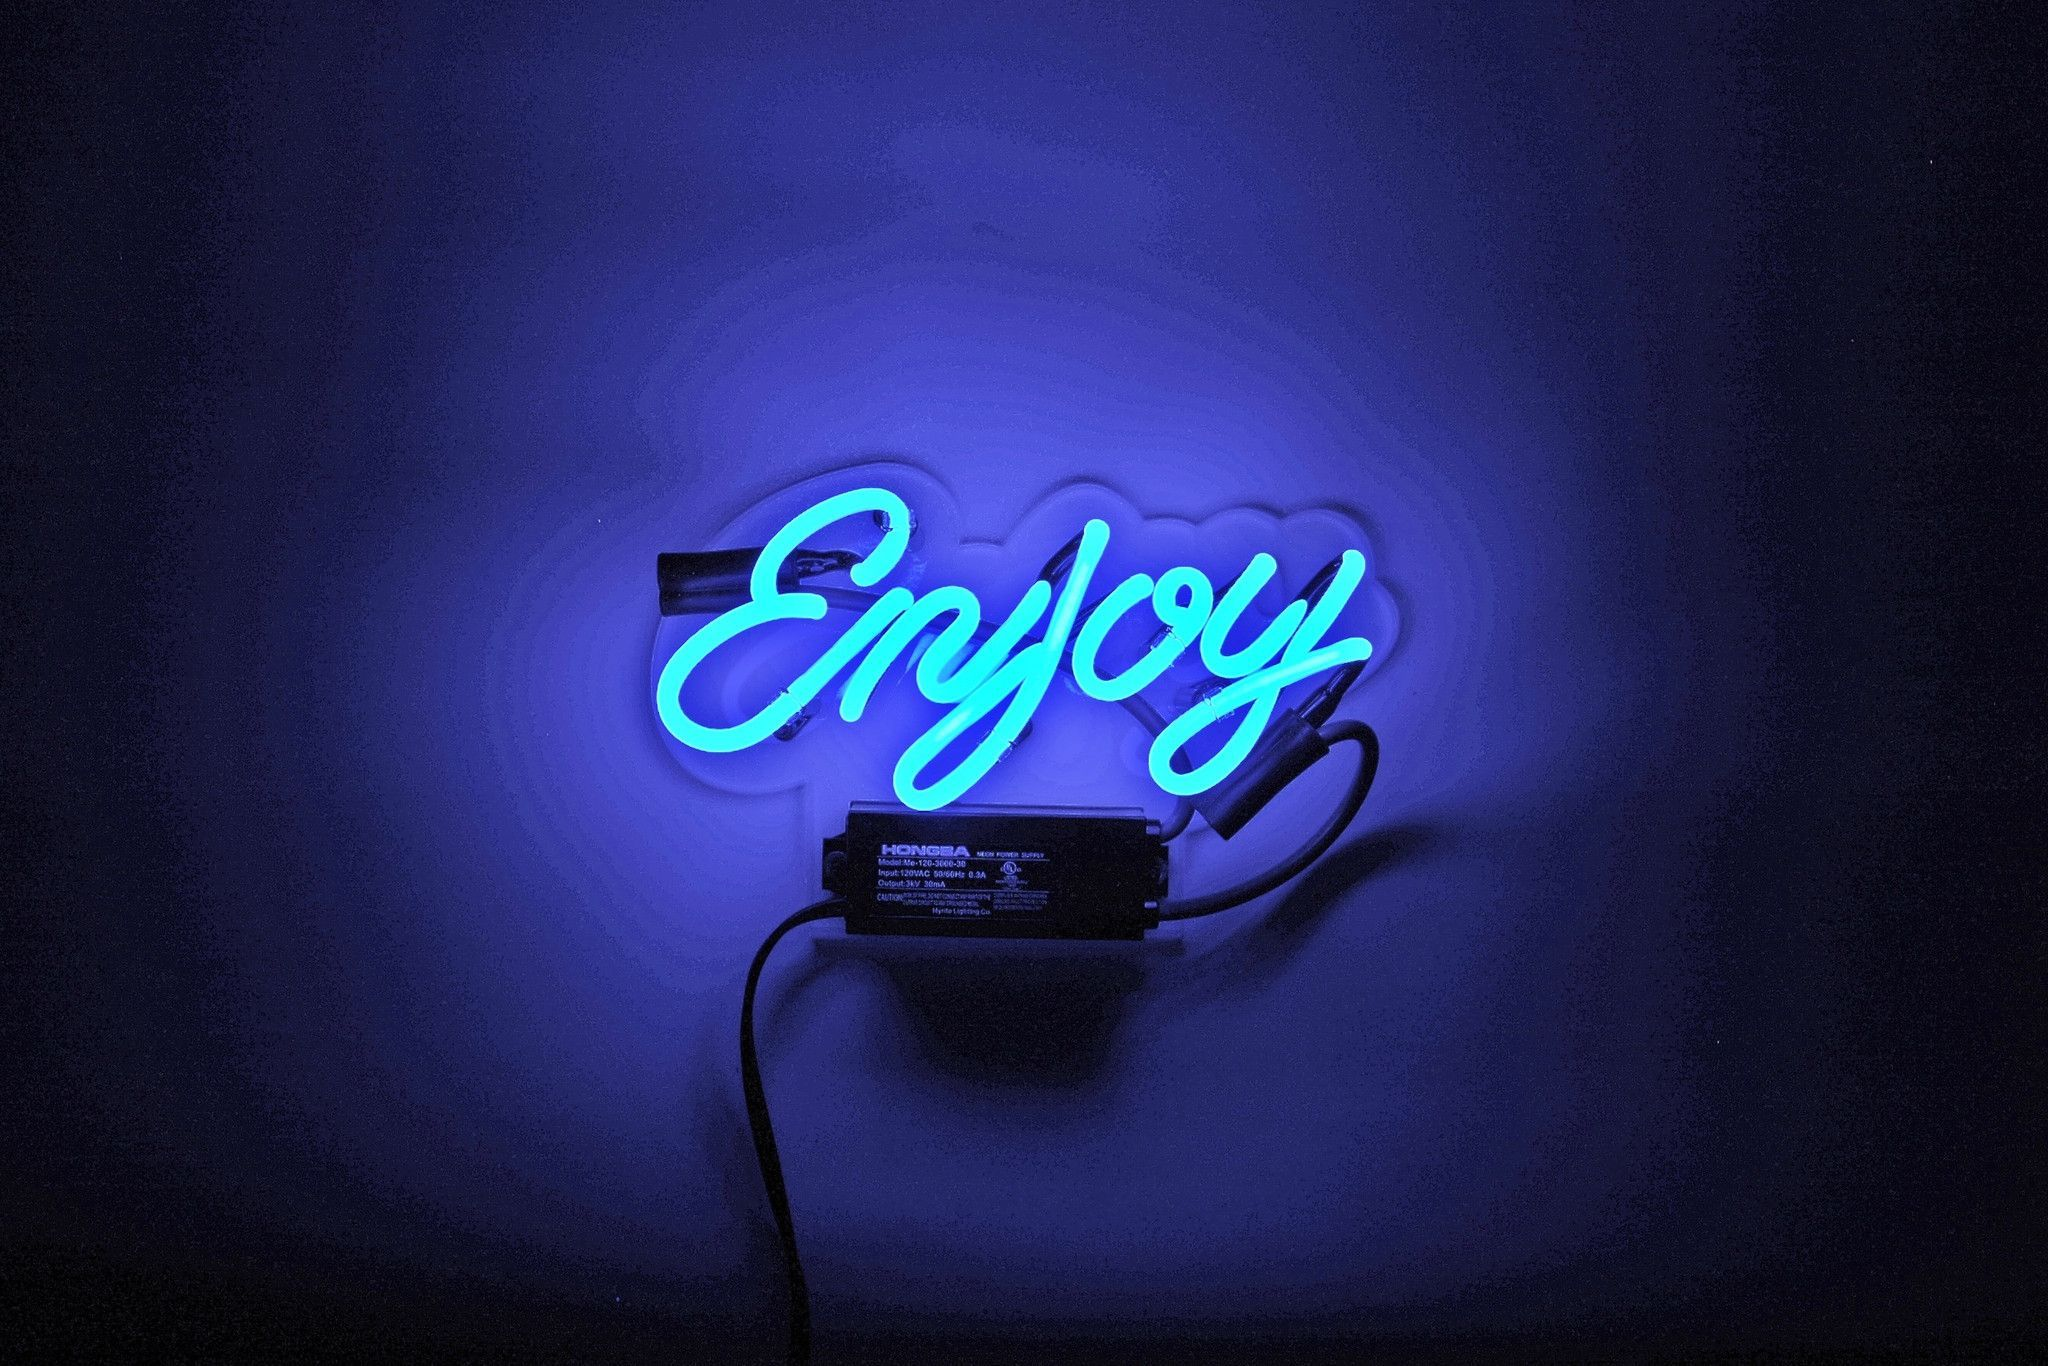 enjoy neon sign edgy neon signs neon signs home neon home decor. Black Bedroom Furniture Sets. Home Design Ideas